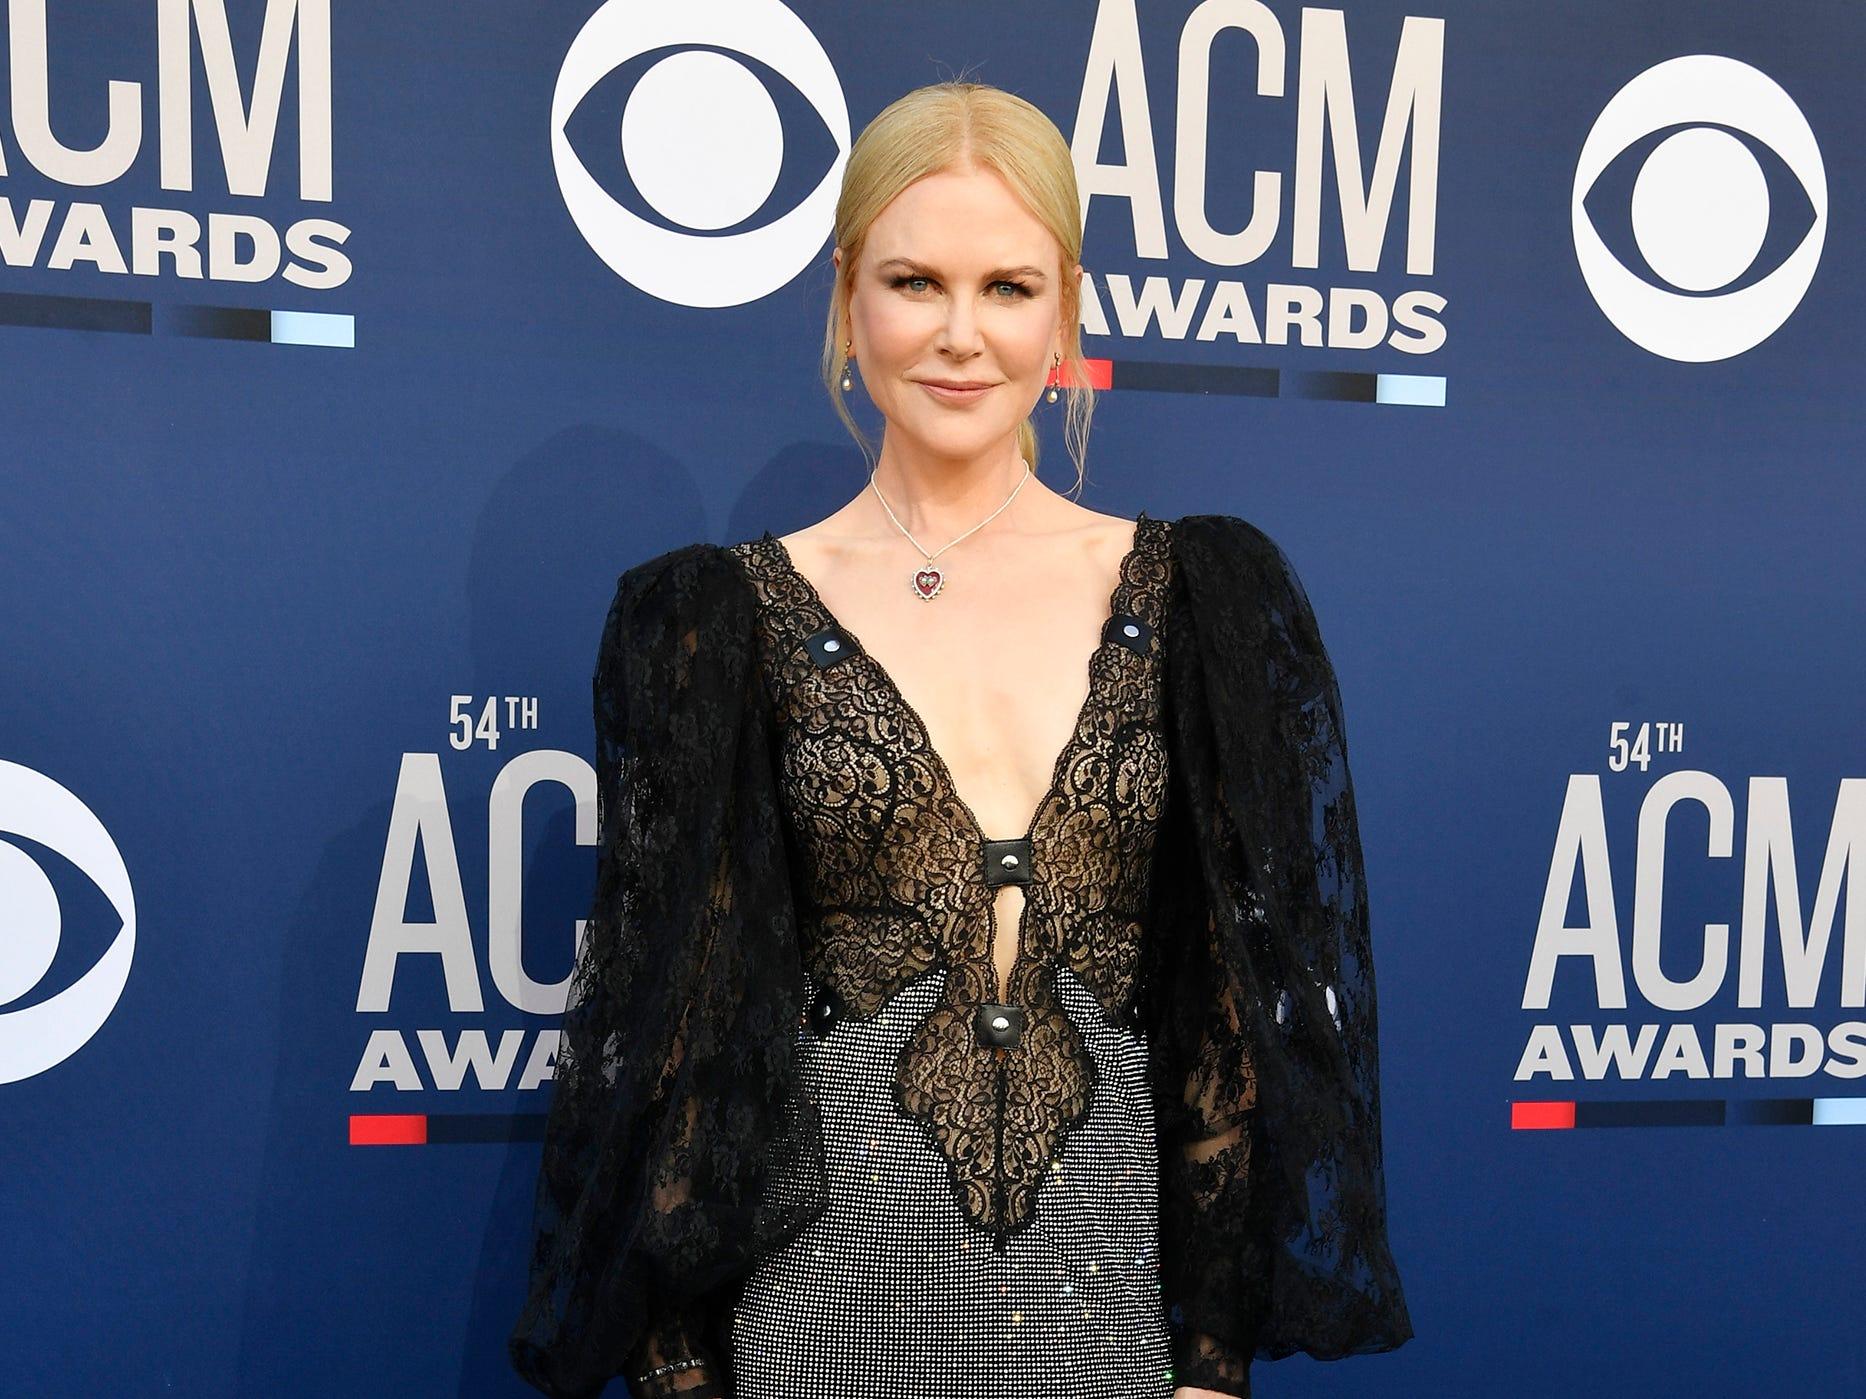 Nicole Kidman walks the red carpet at the 54TH Academy of Country Music Awards Sunday, April 7, 2019, in Las Vegas, Nev.